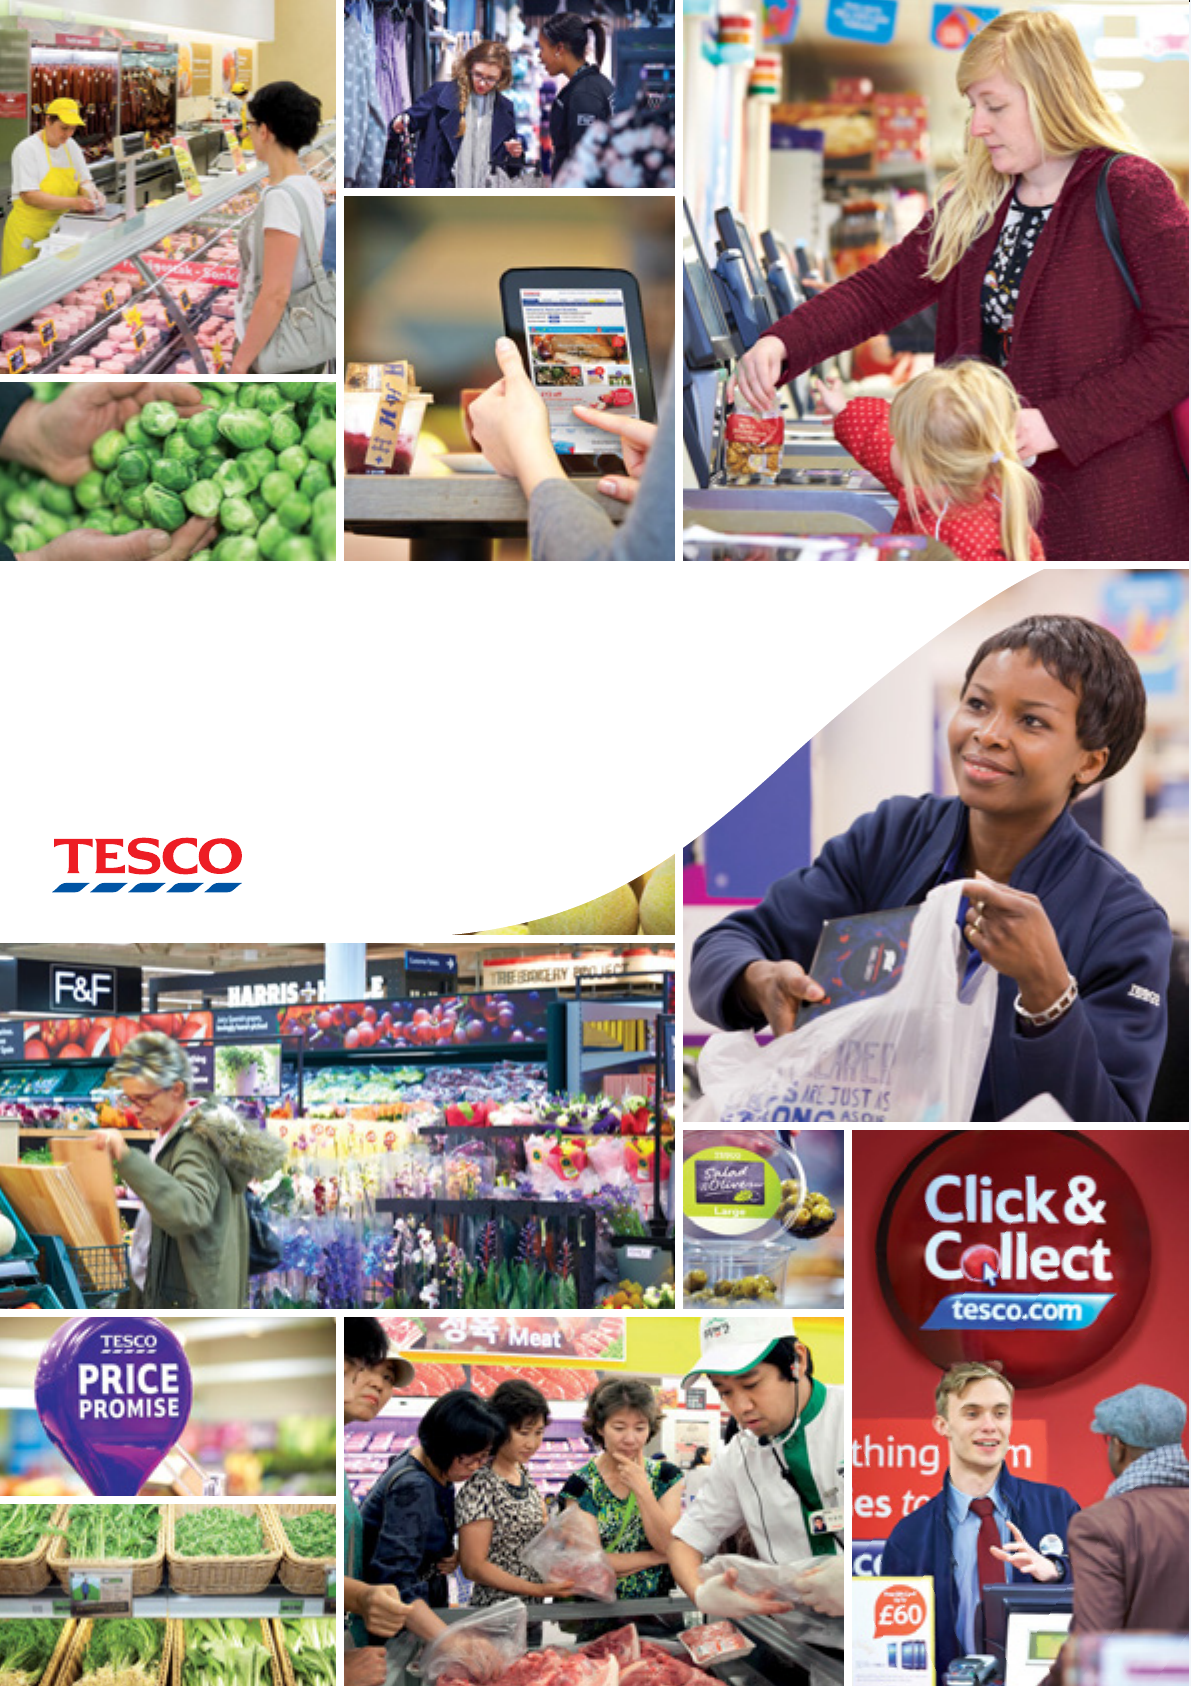 report on tesco Tesco plc report contains the full discussion of tesco swot analysis the report also illustrates the application of the major analytical strategic frameworks in.